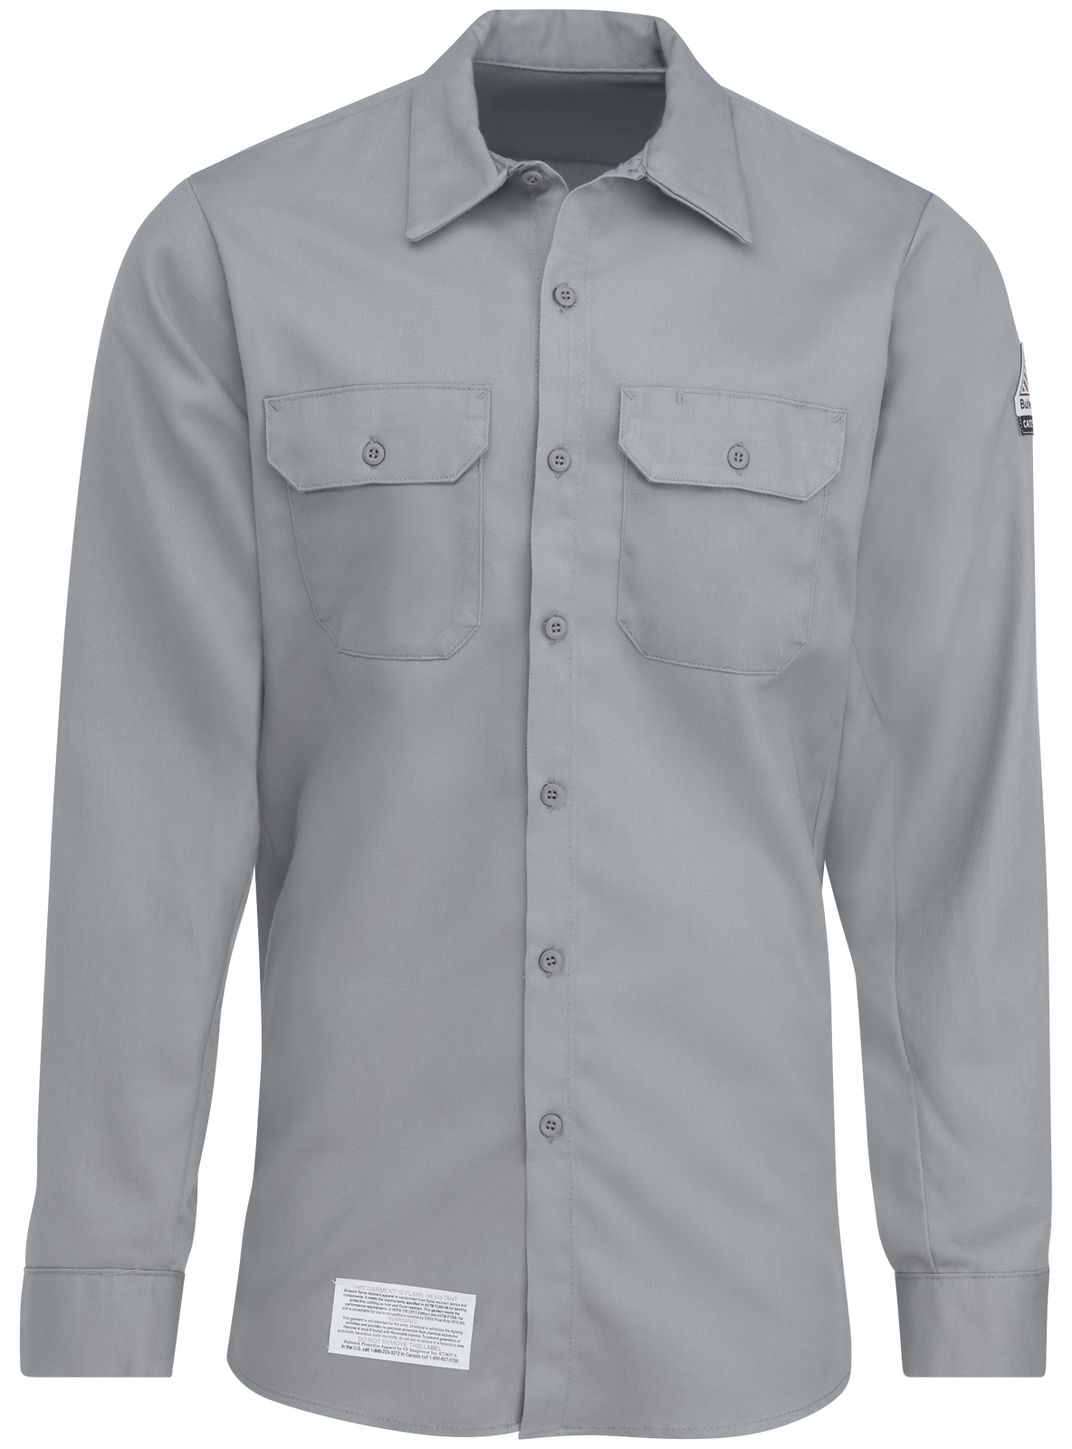 bulwark-fr-work-shirt-slw2-midweight-excel-comfortouch-silver-grey-front.jpg